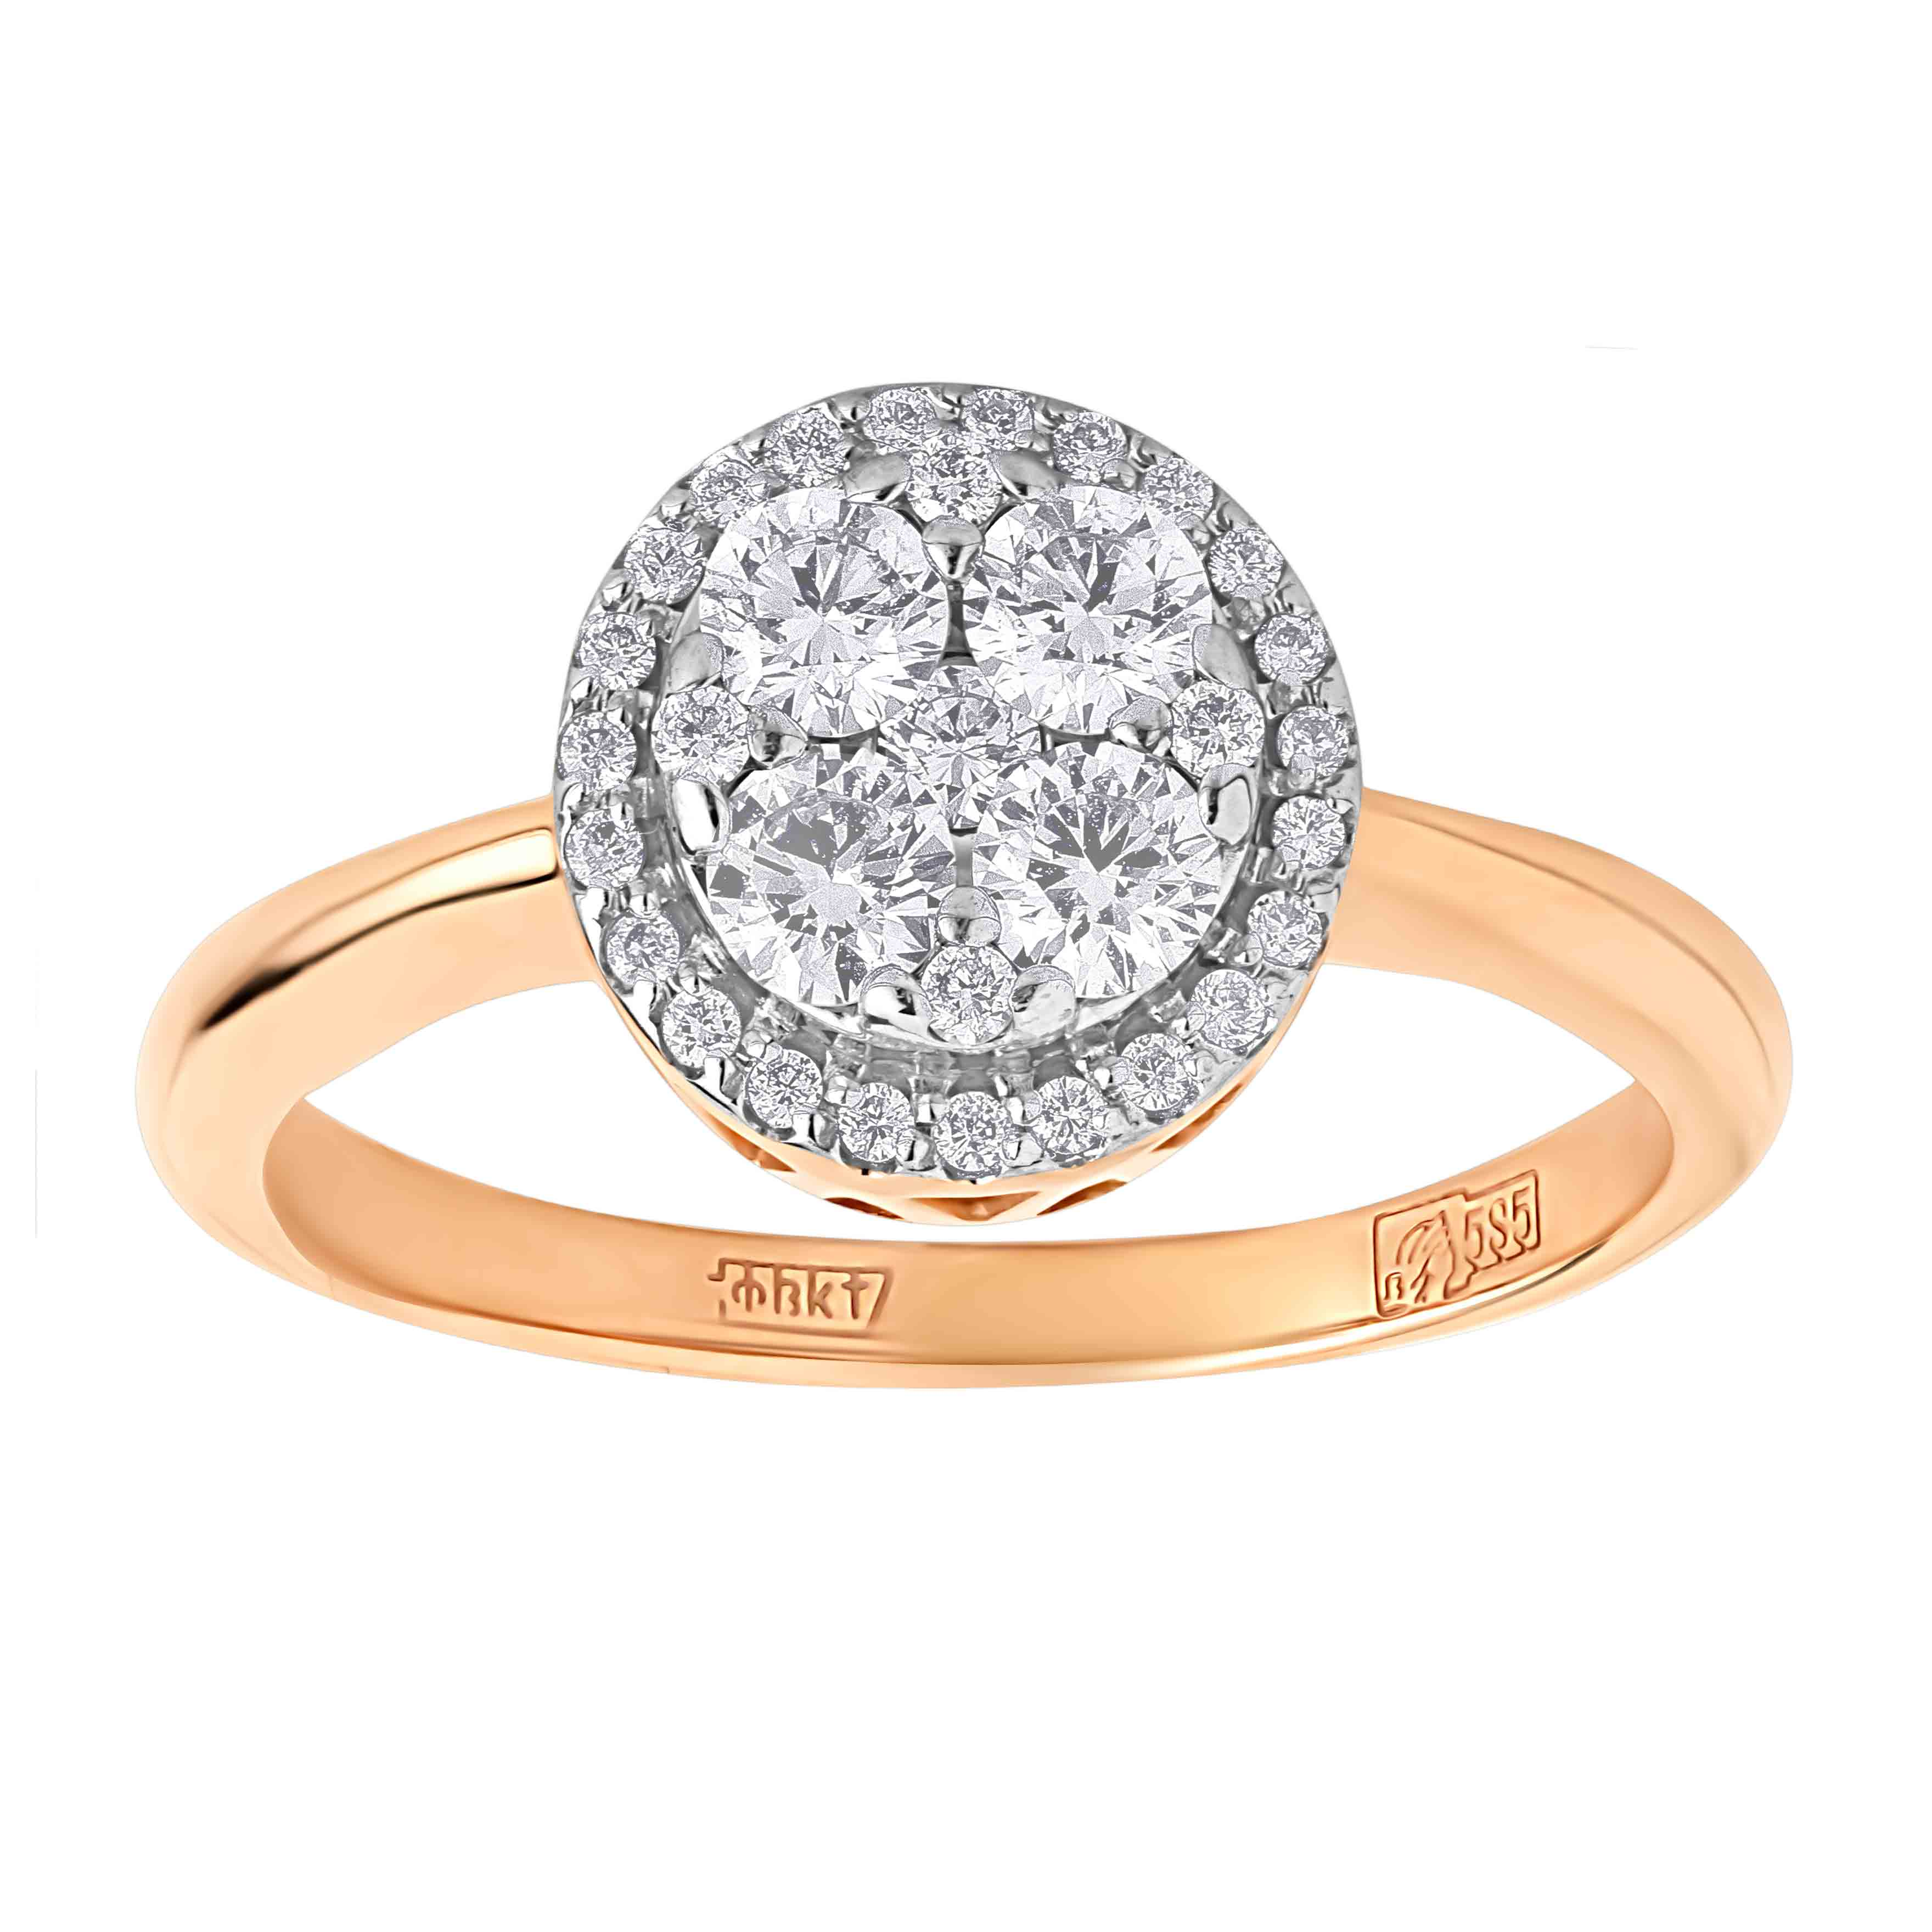 Circular Diamond Cluster in Diamond Halo Rose Gold Ring. View 2